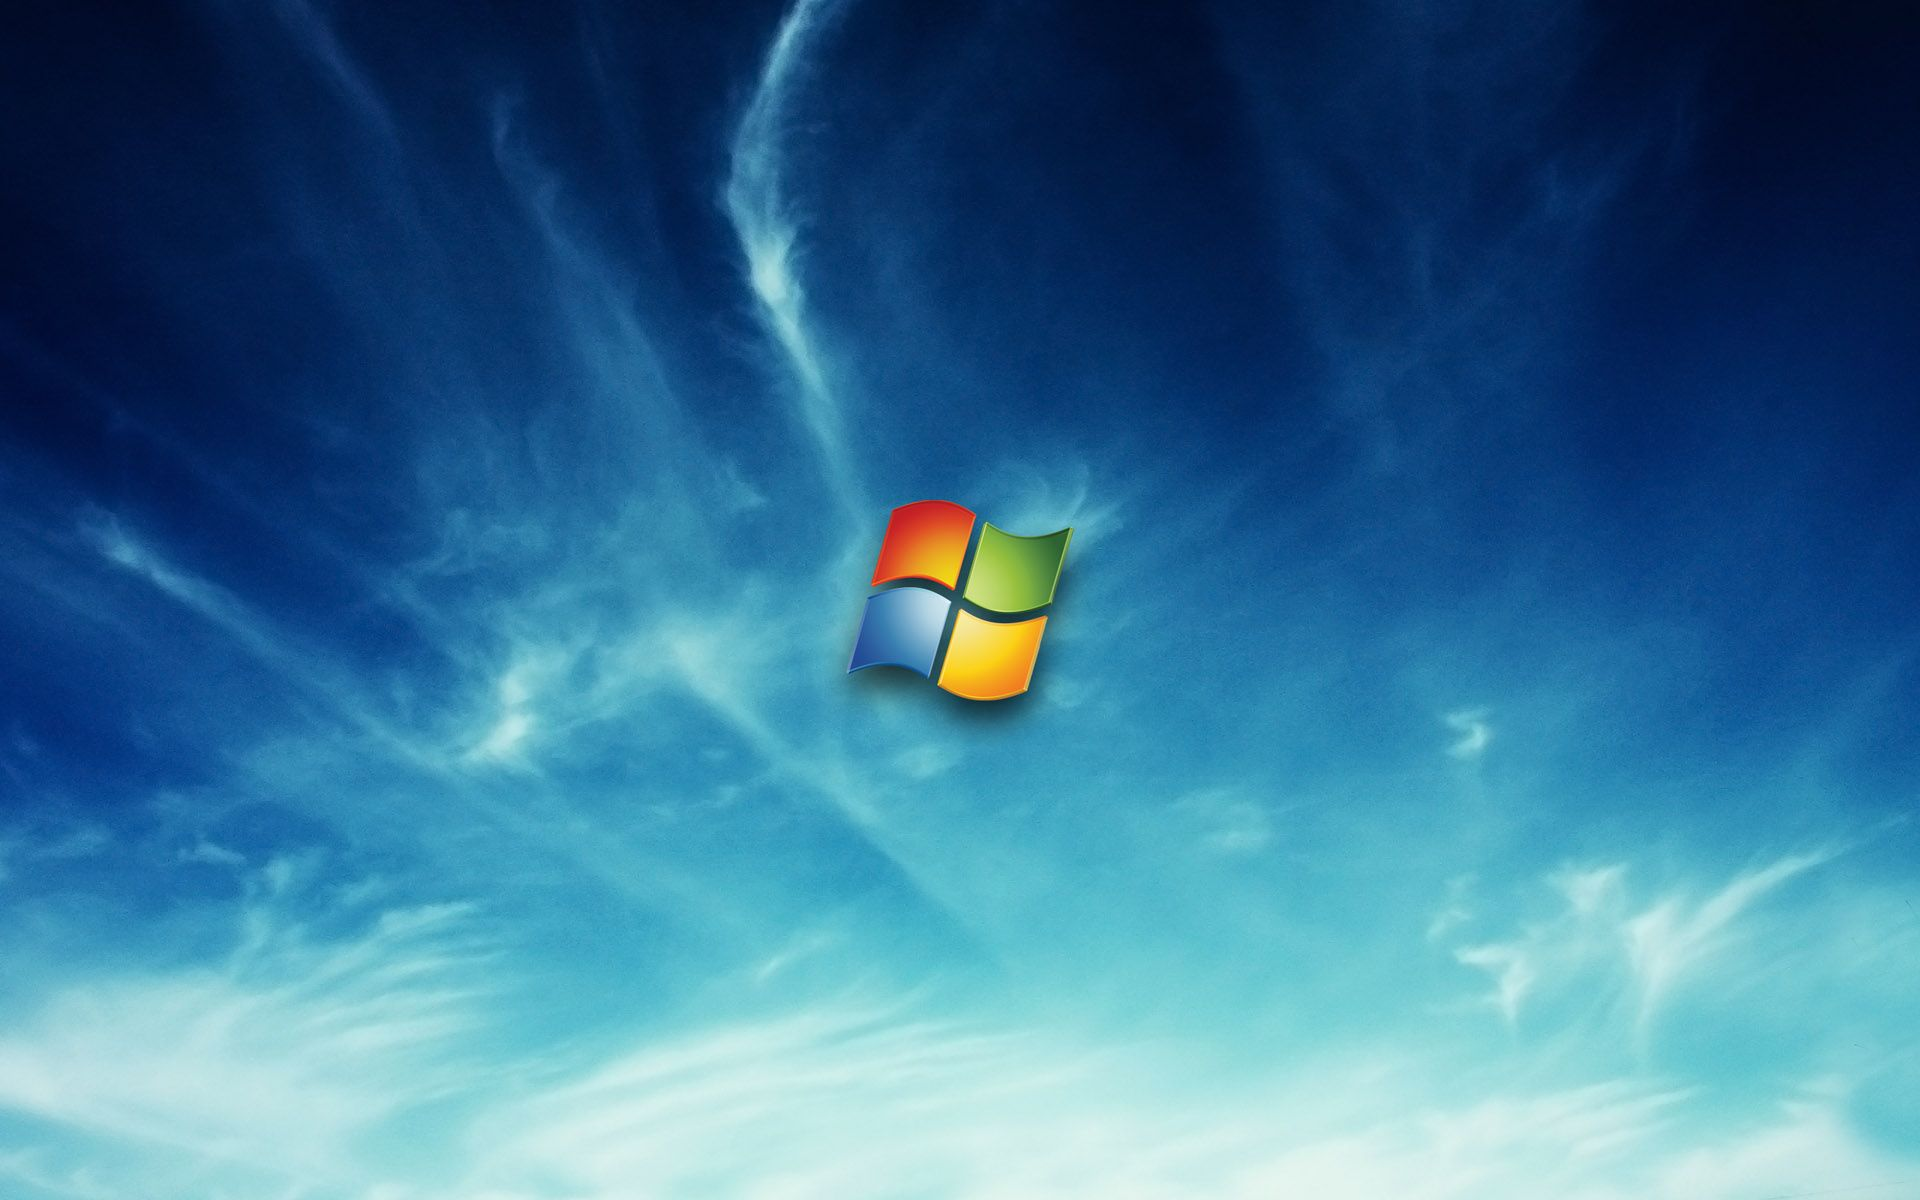 windows-7-original-wallpapers